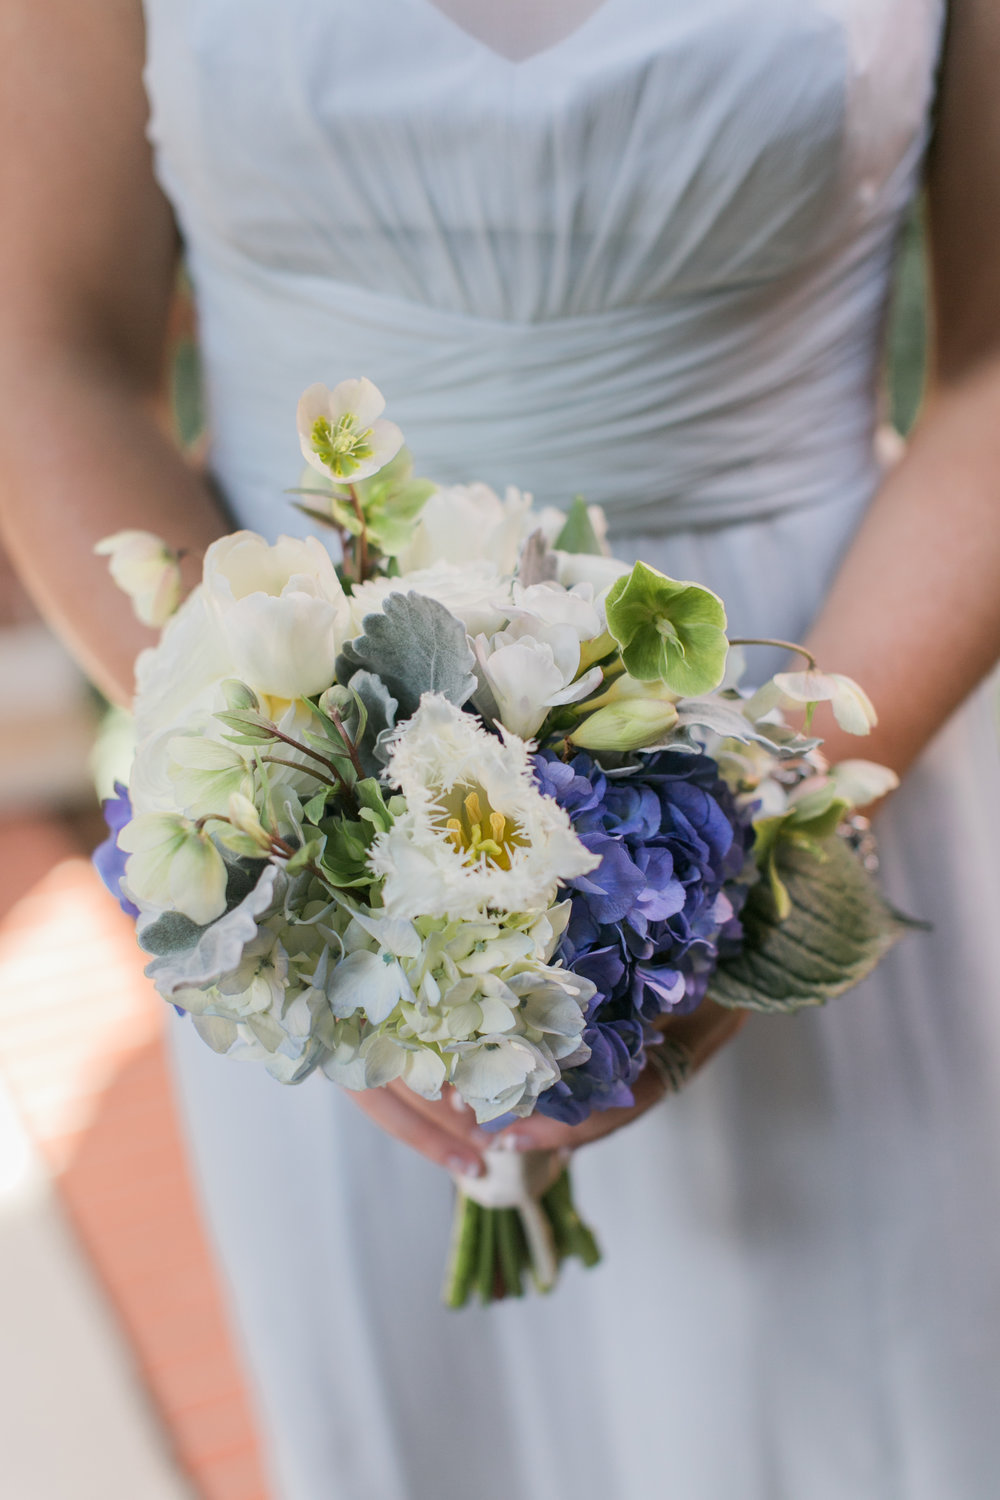 whimsical maids bouquet - Featured floral: dusty miller, hellebores, hydrangea, tulips